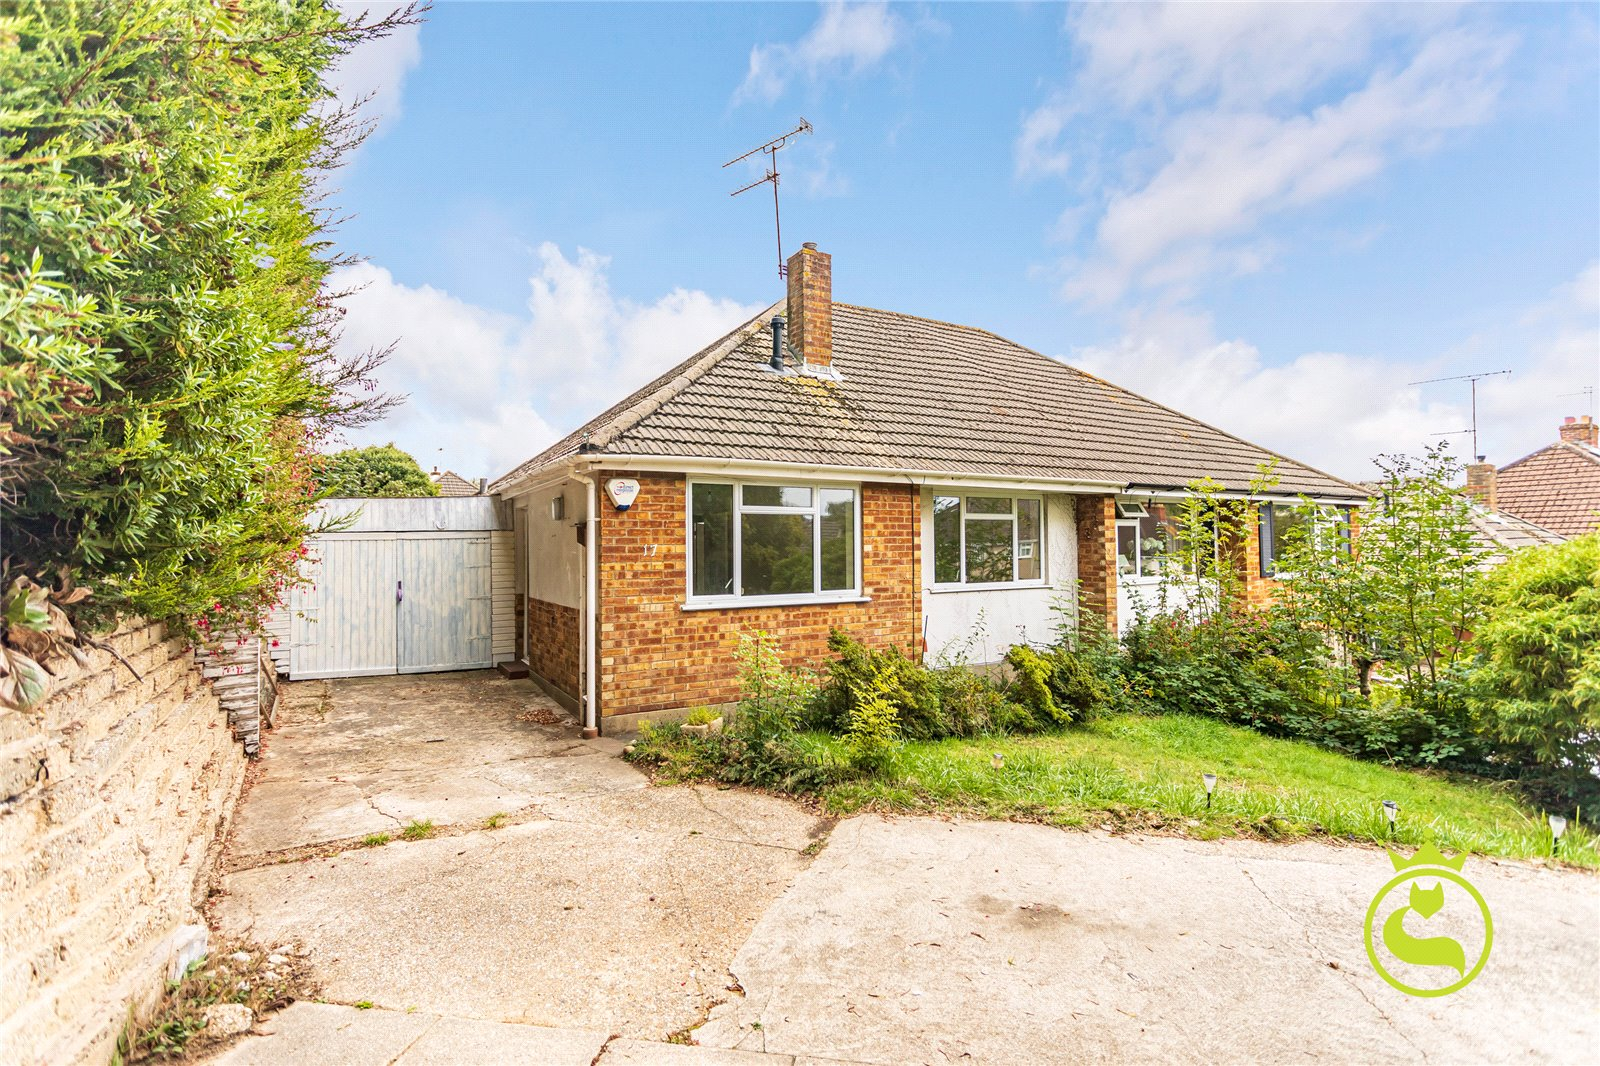 2 bed bungalow to rent in South Park Road, Poole  - Property Image 1